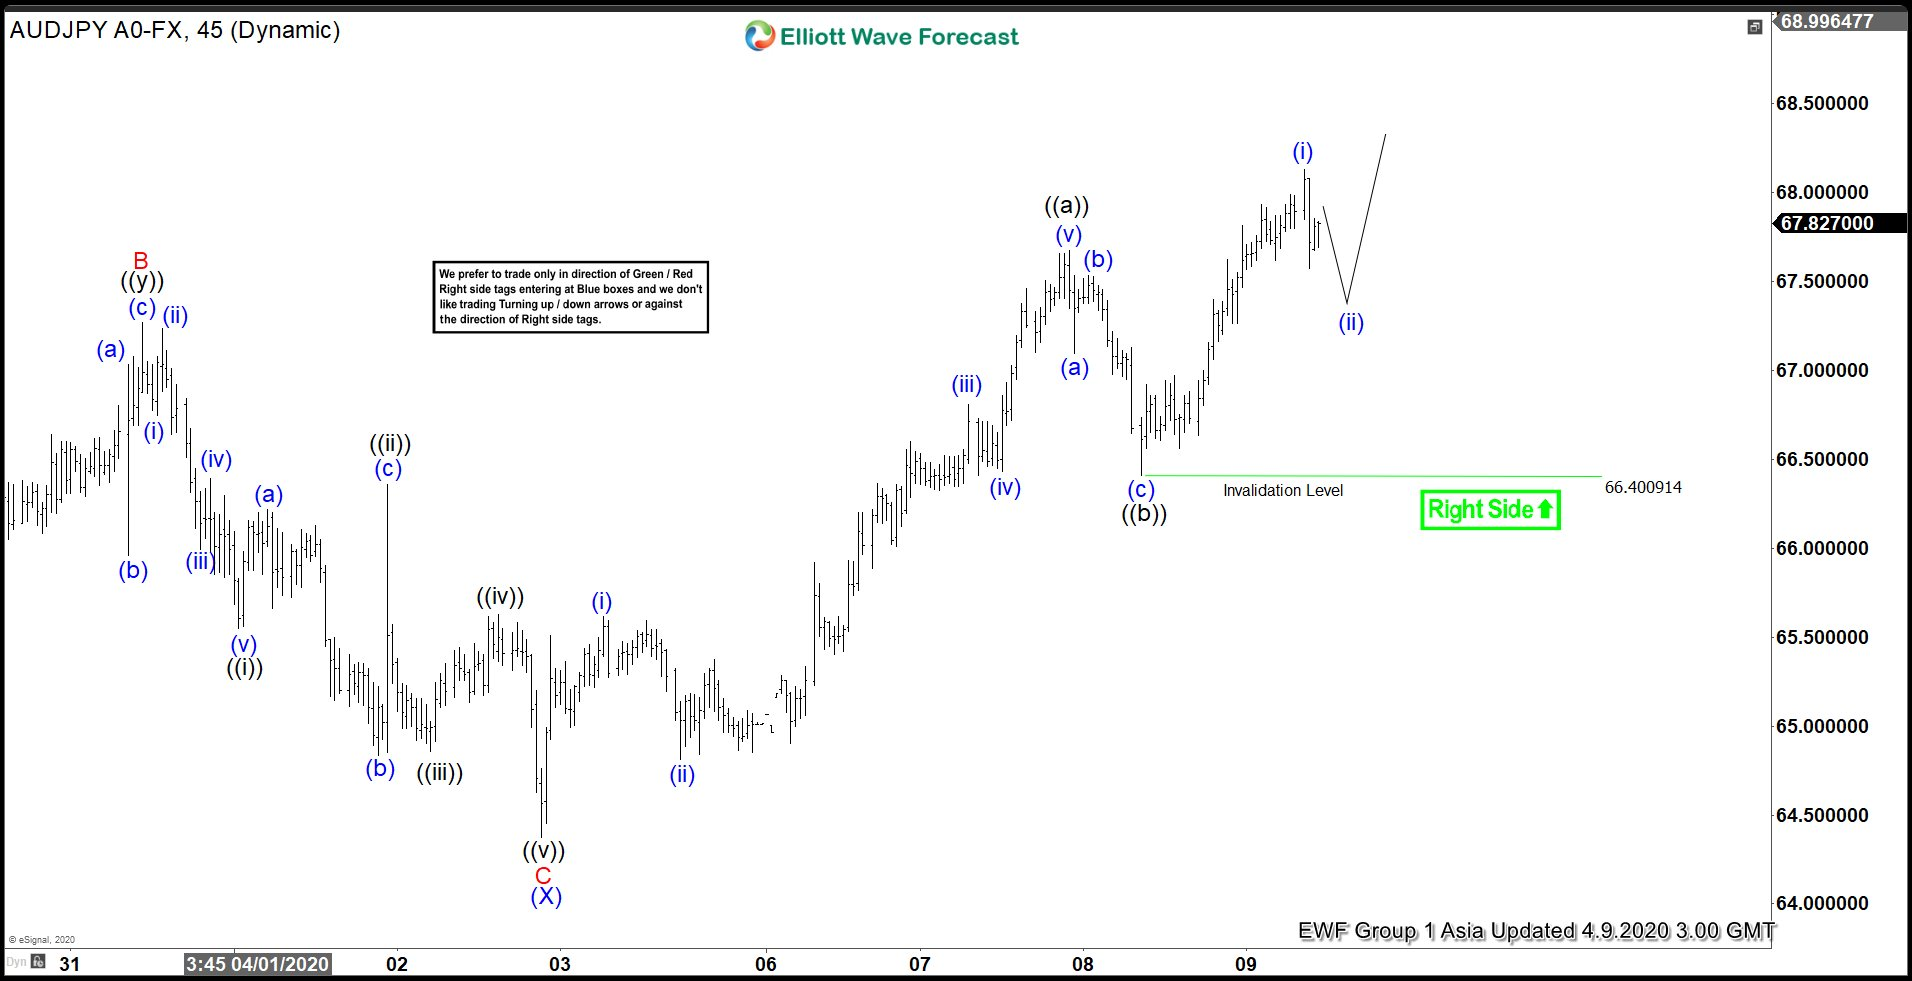 Elliott Wave View: Further Upside in AUDJPY